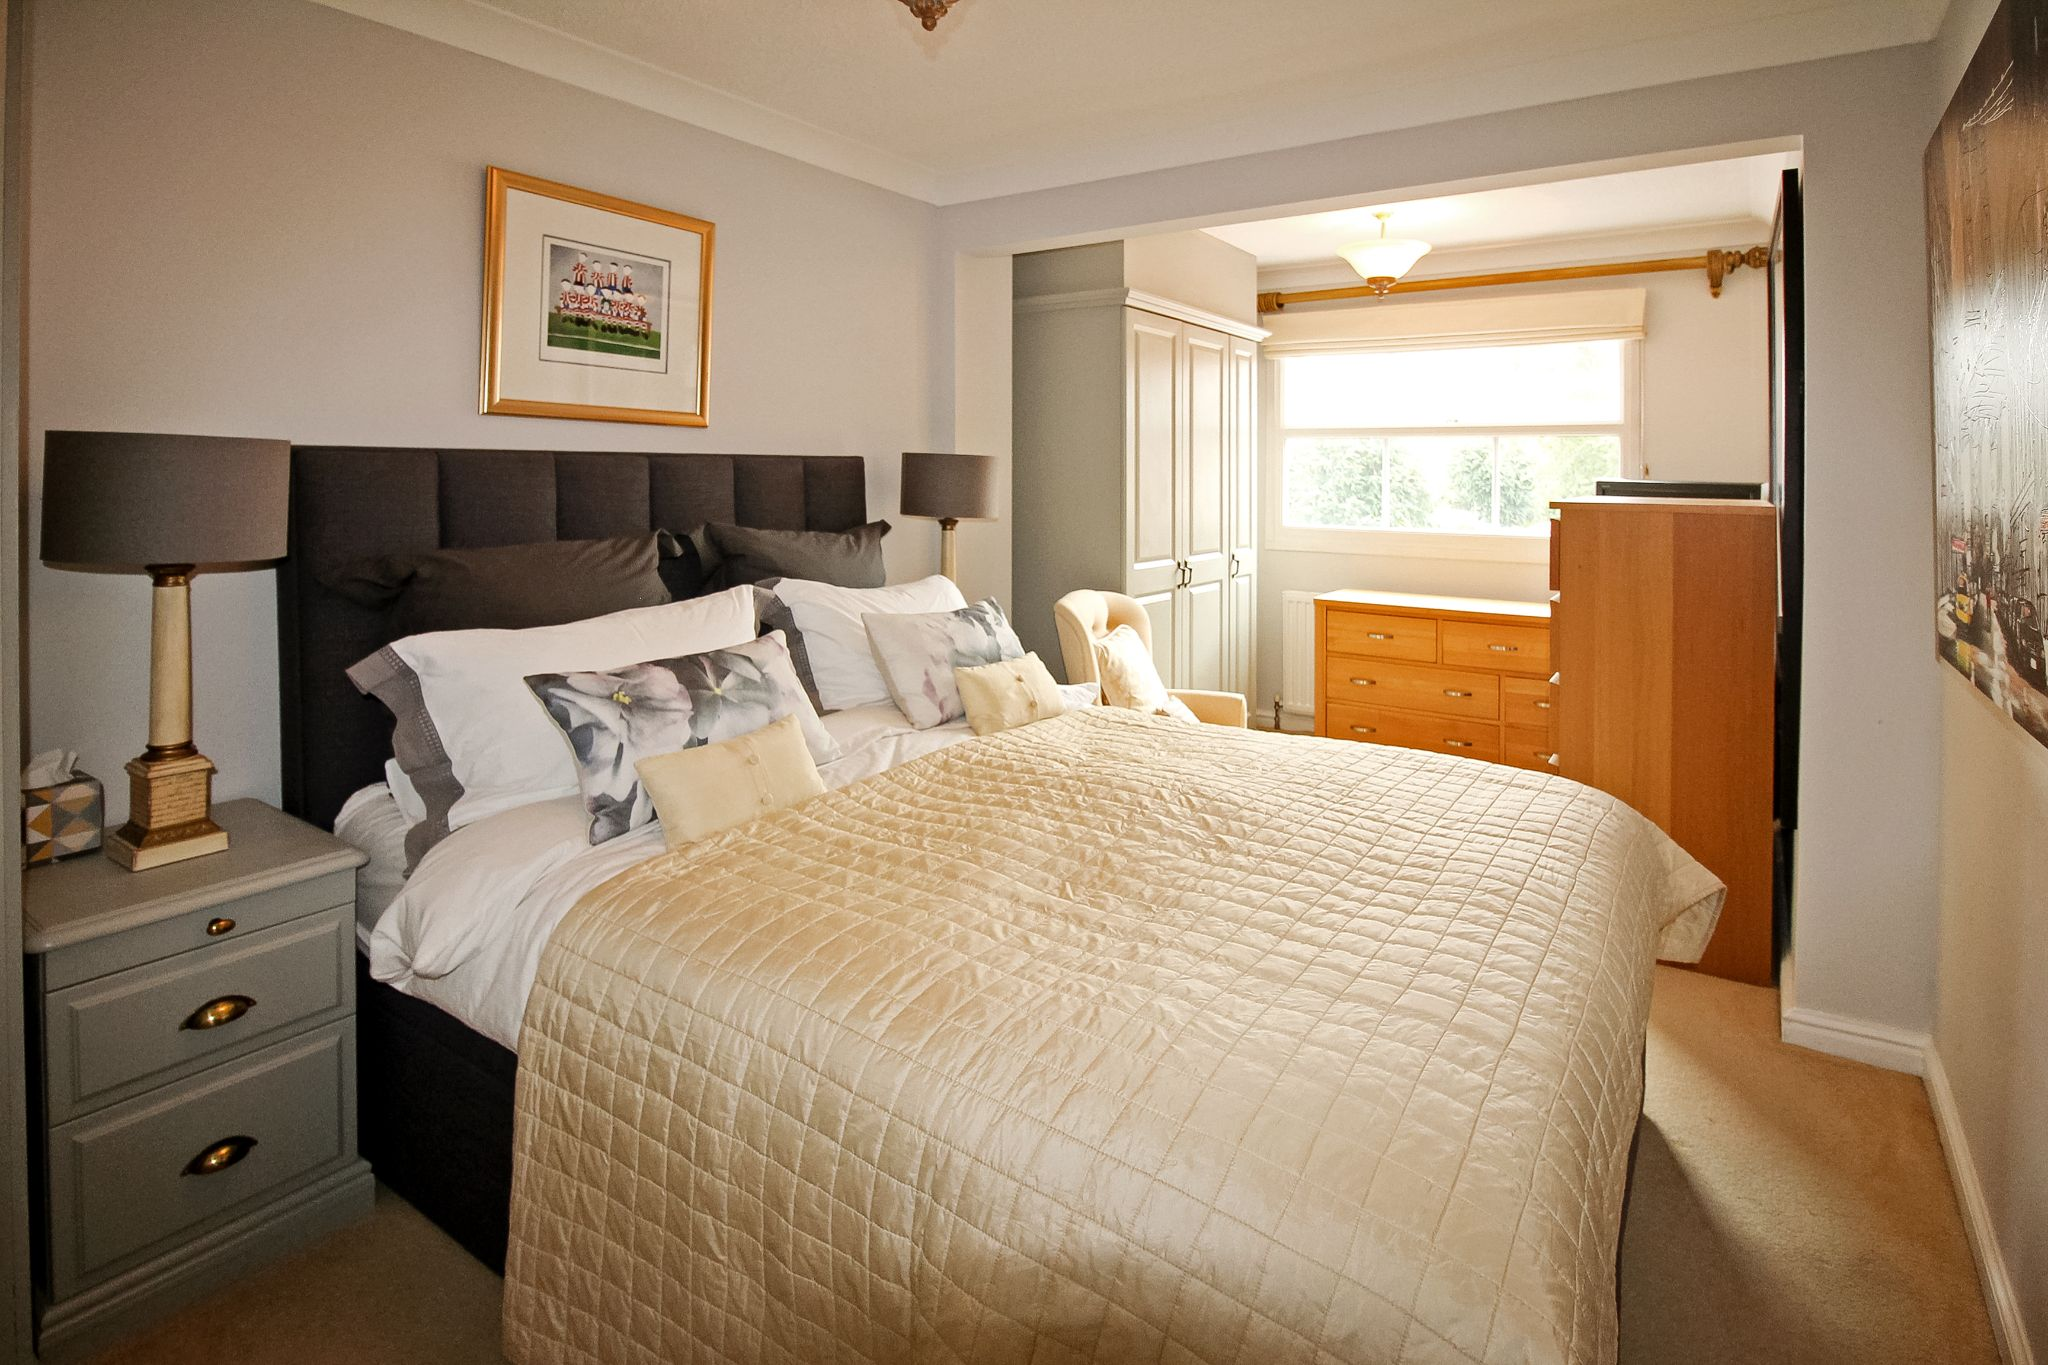 4 bedroom detached house For Sale in Solihull - Photograph 12.